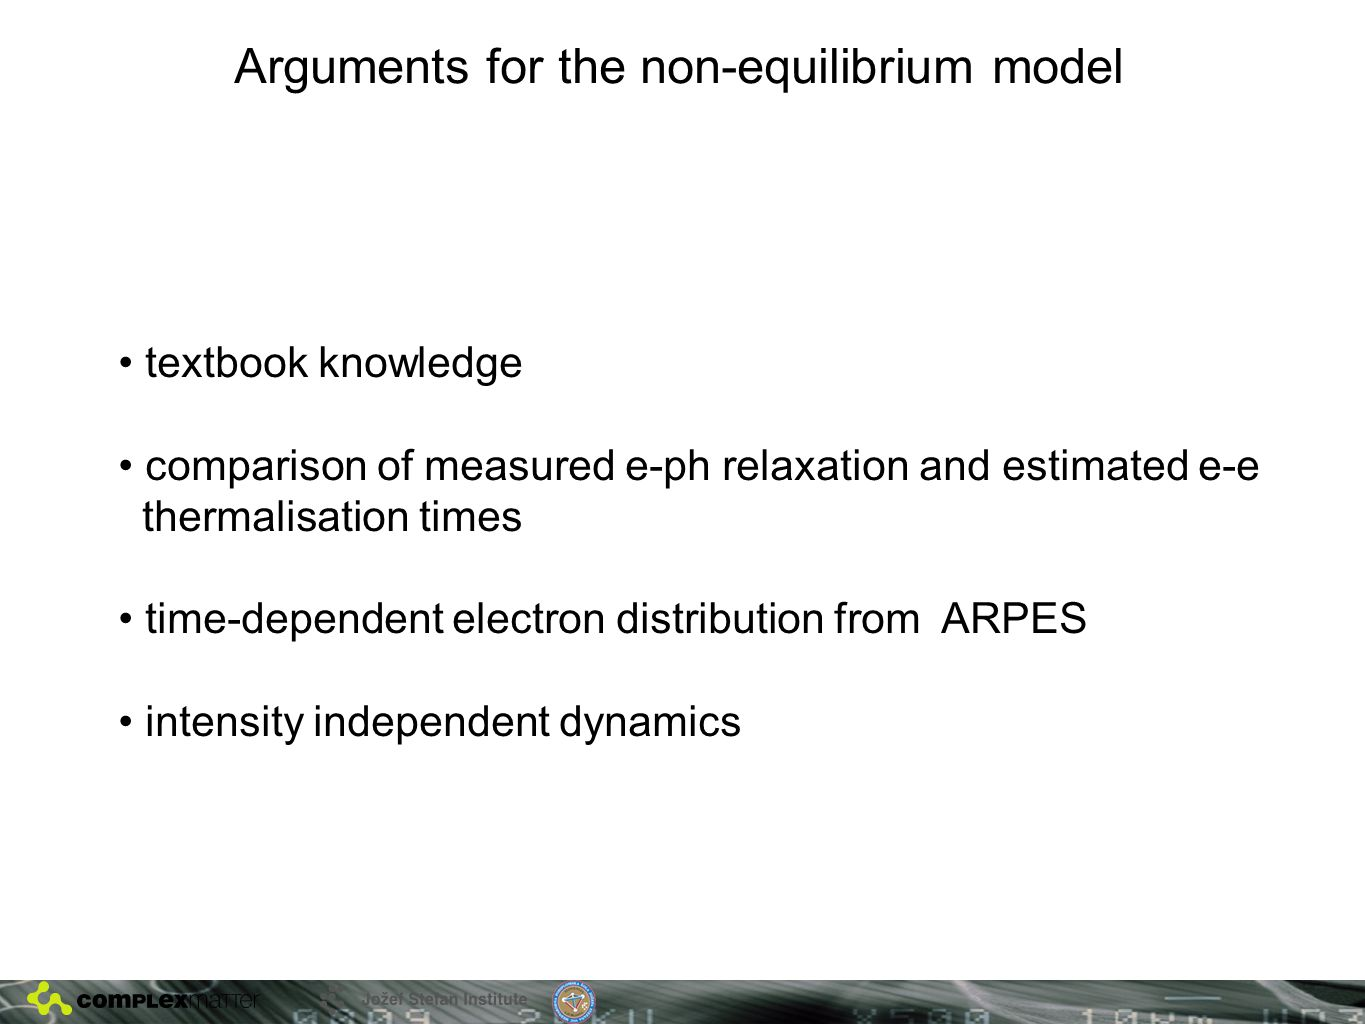 Arguments for the non-equilibrium model textbook knowledge comparison of measured e-ph relaxation and estimated e-e thermalisation times time-dependent electron distribution from ARPES intensity independent dynamics